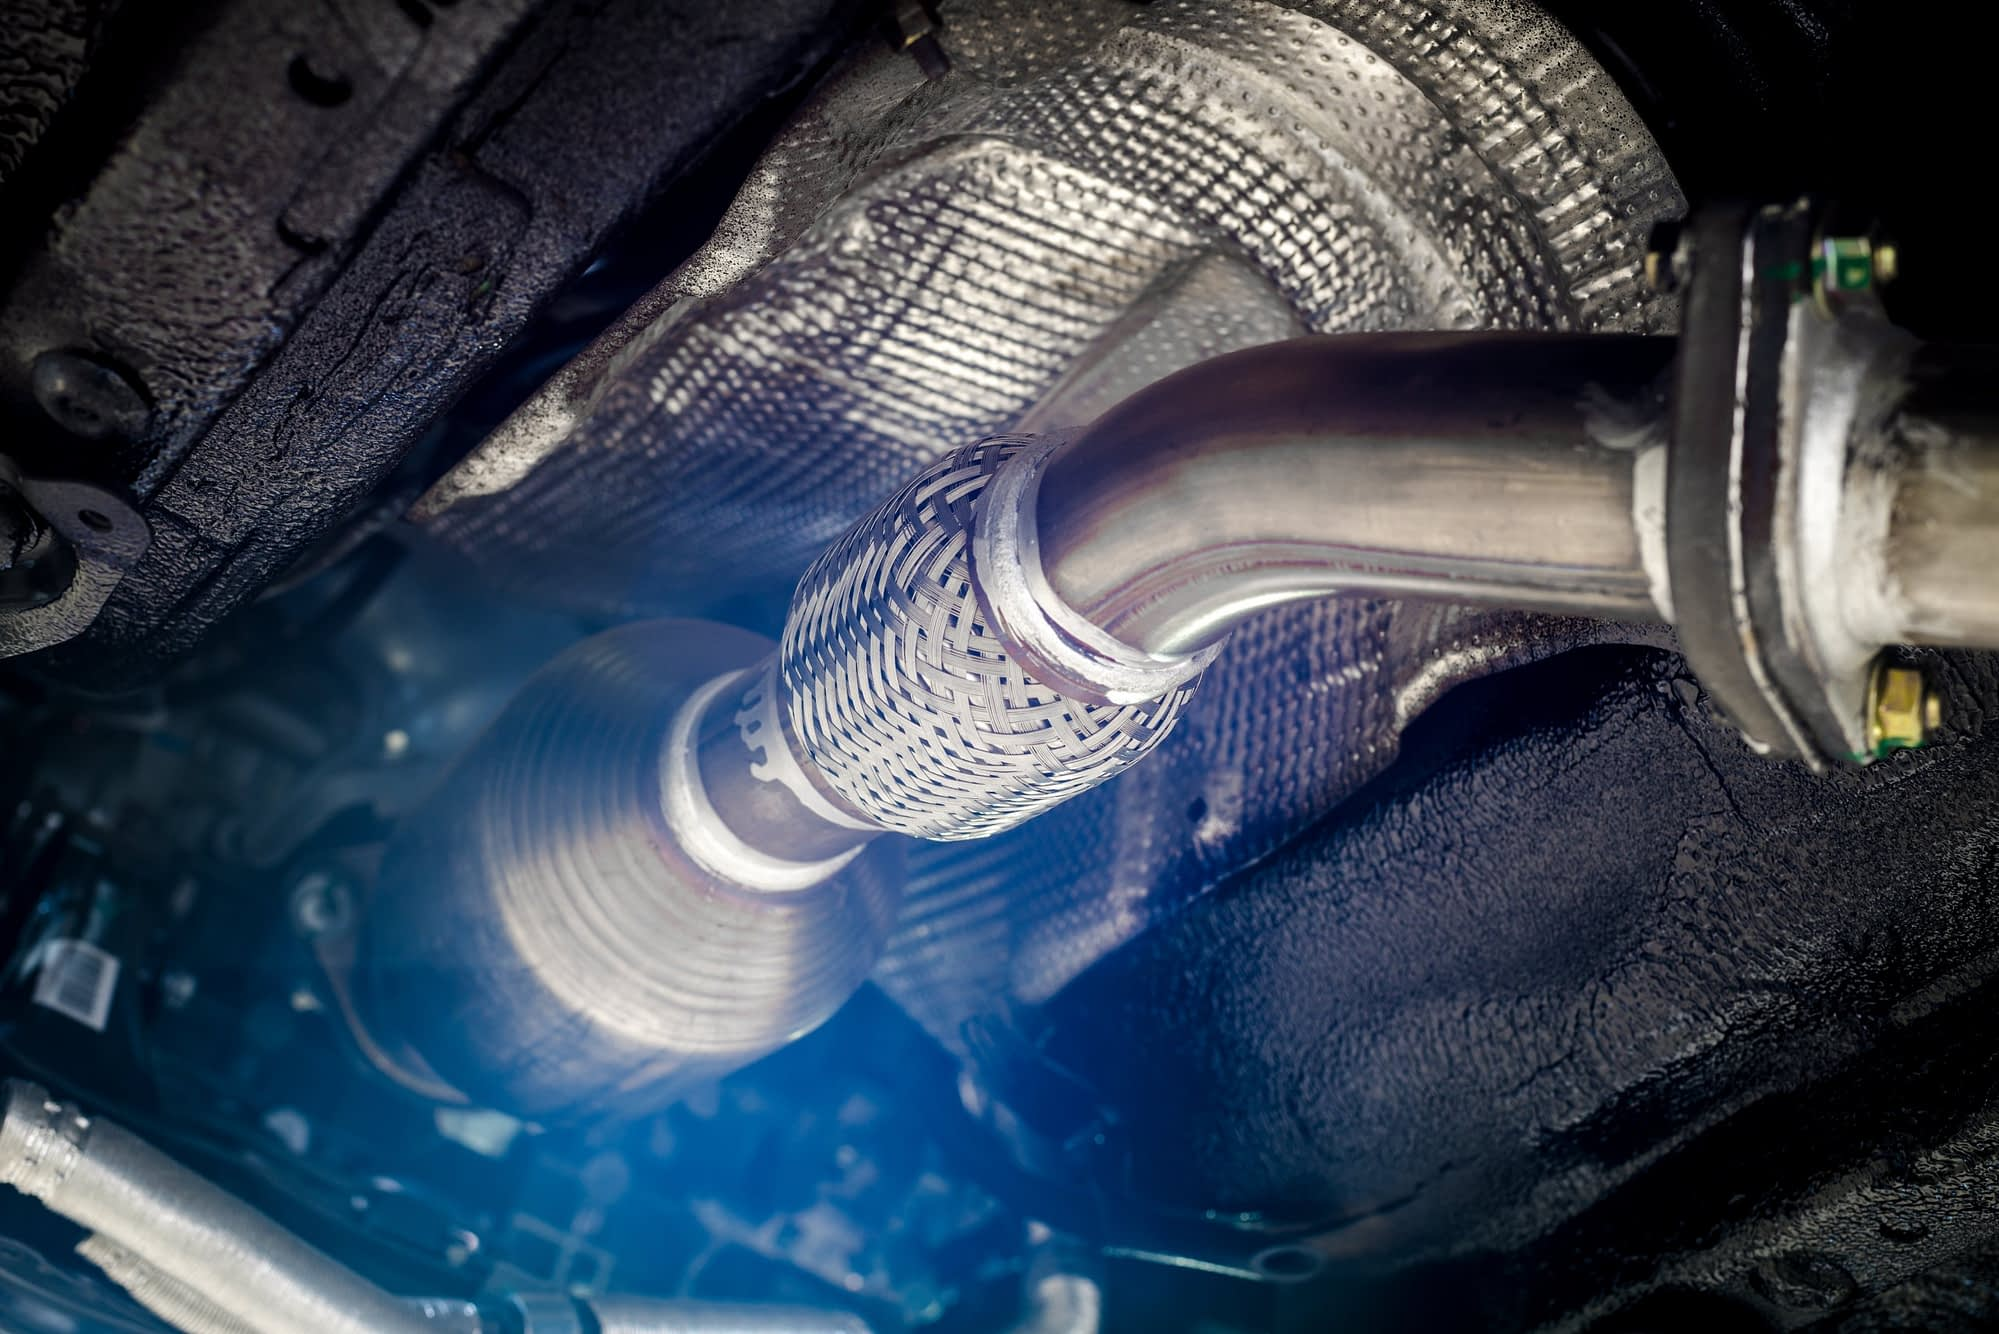 Complete exhaust system used in DPF cleaning